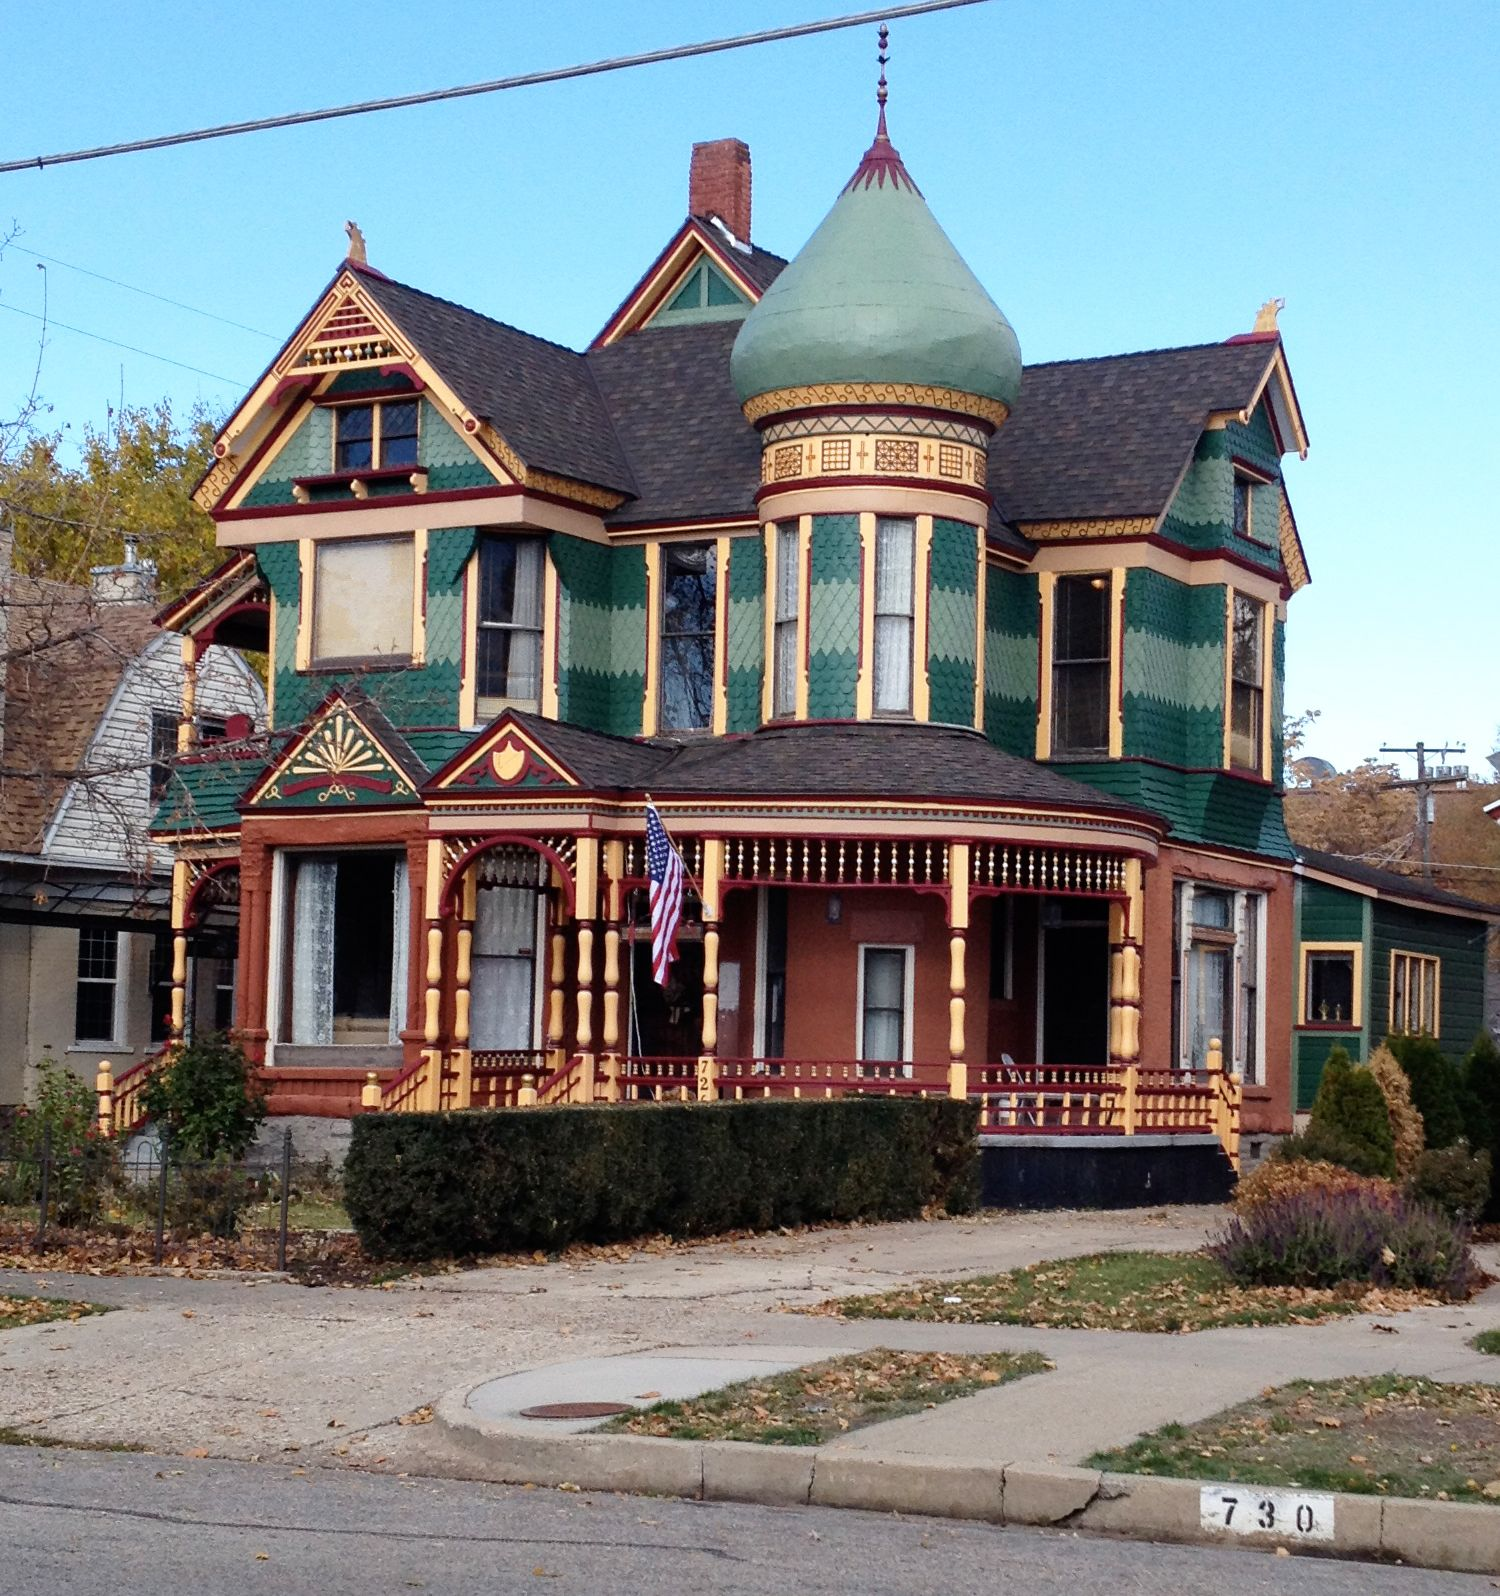 Victorian homes for sale in mississippi - Utah Victorian Photos 25th St Ogden Washington Blvd Historic Victorian Pioneer Homes